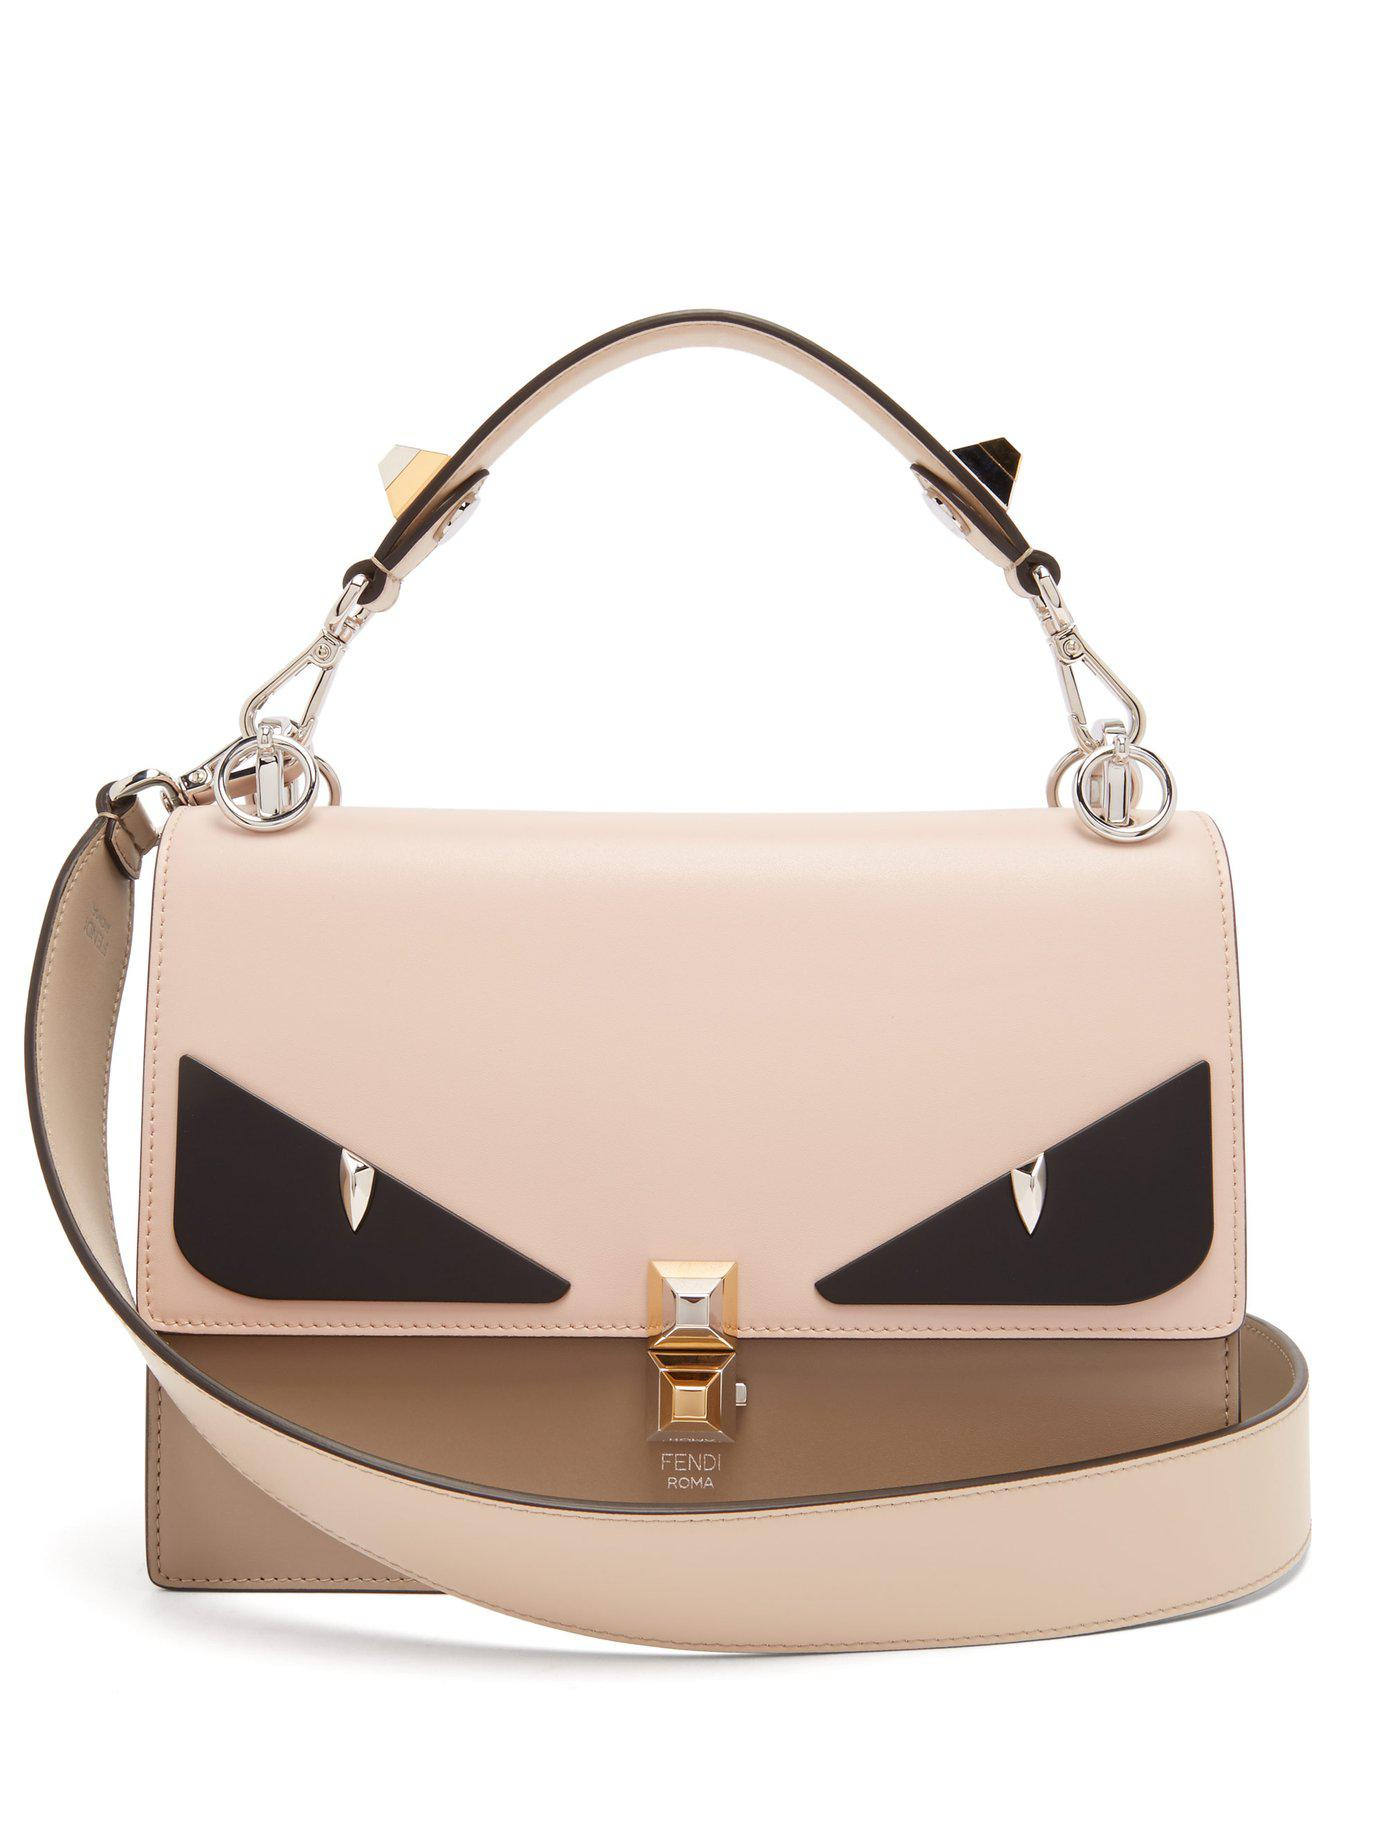 bca7110ef8d0 Lyst - Fendi Kan I Monster Eyes Leather Bag - Save 26%